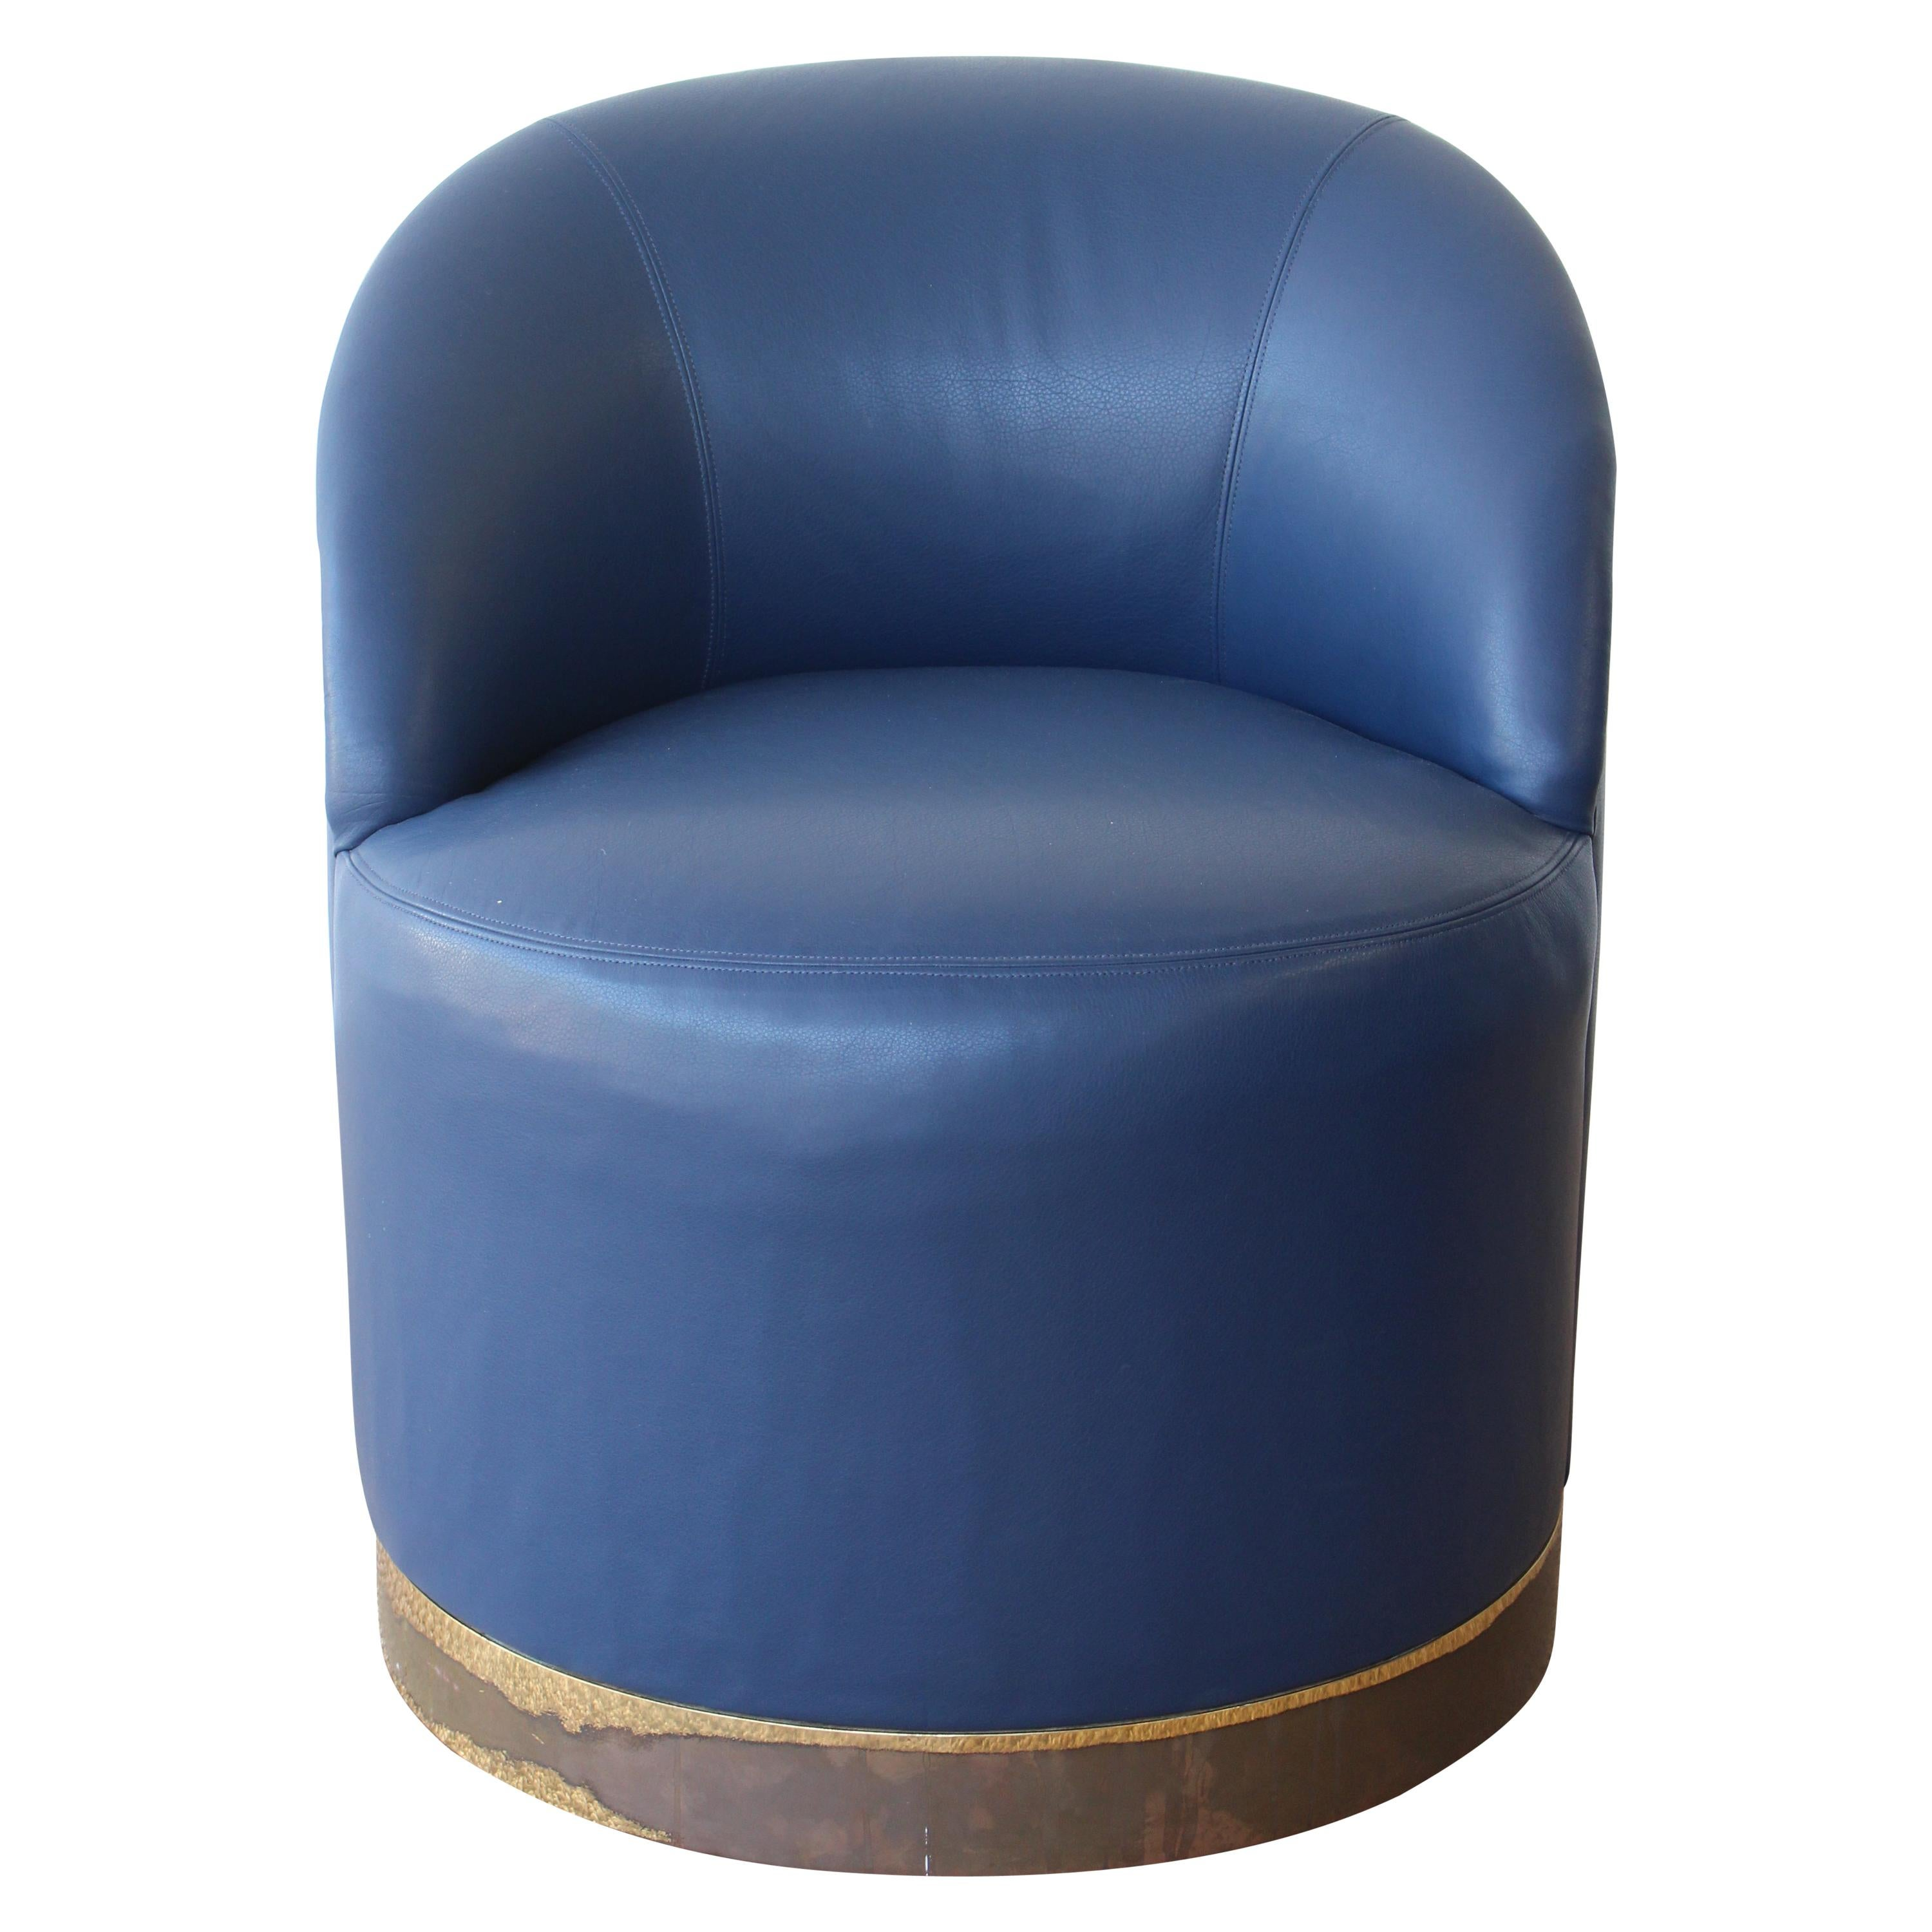 Leather Swivel Chair by Karl Springer, U.S.A, 1970s, Pair Available.